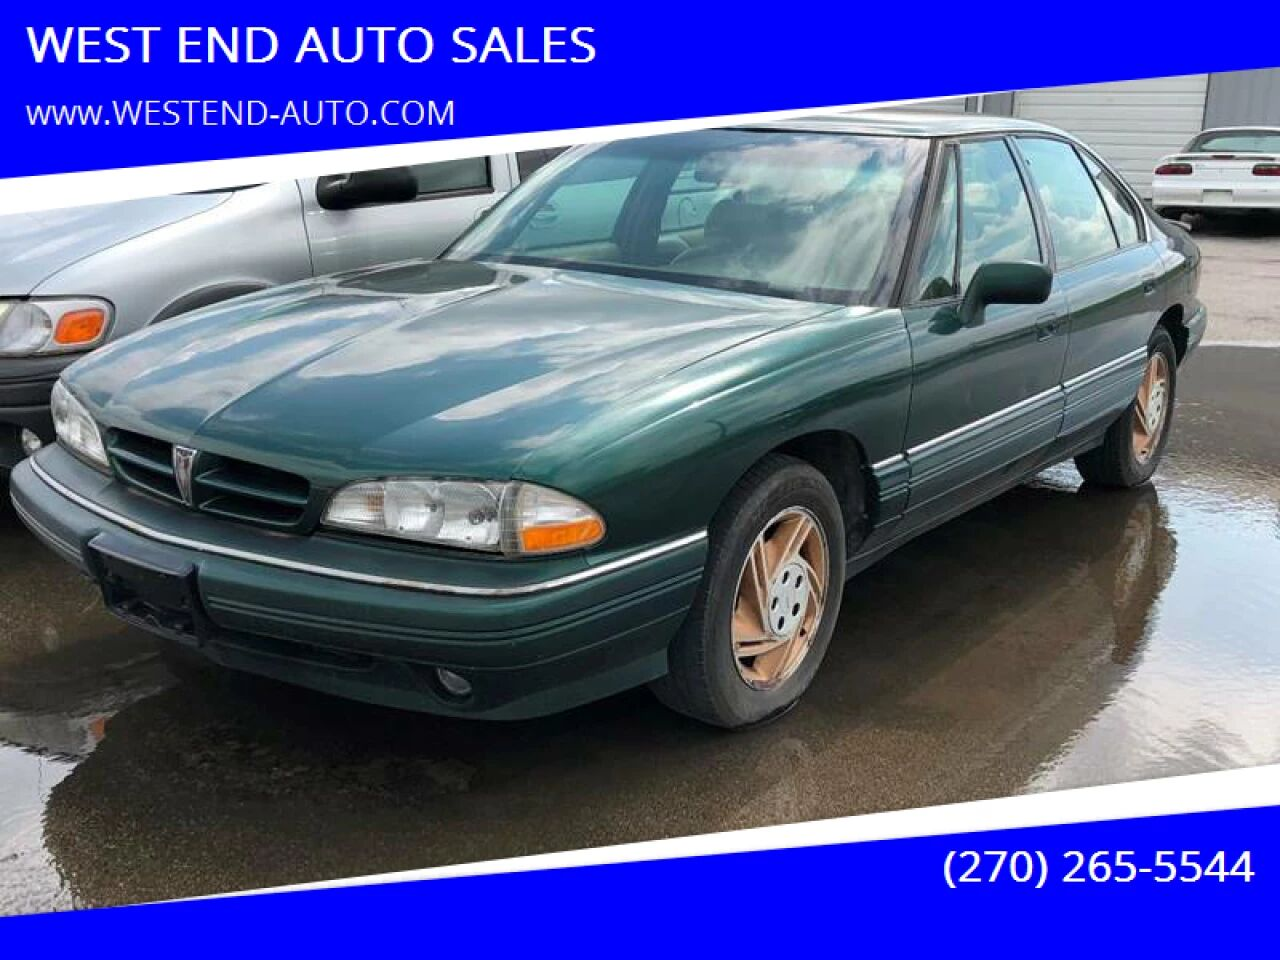 used 1993 pontiac bonneville for sale carsforsale com 1993 pontiac bonneville for sale carsforsale com